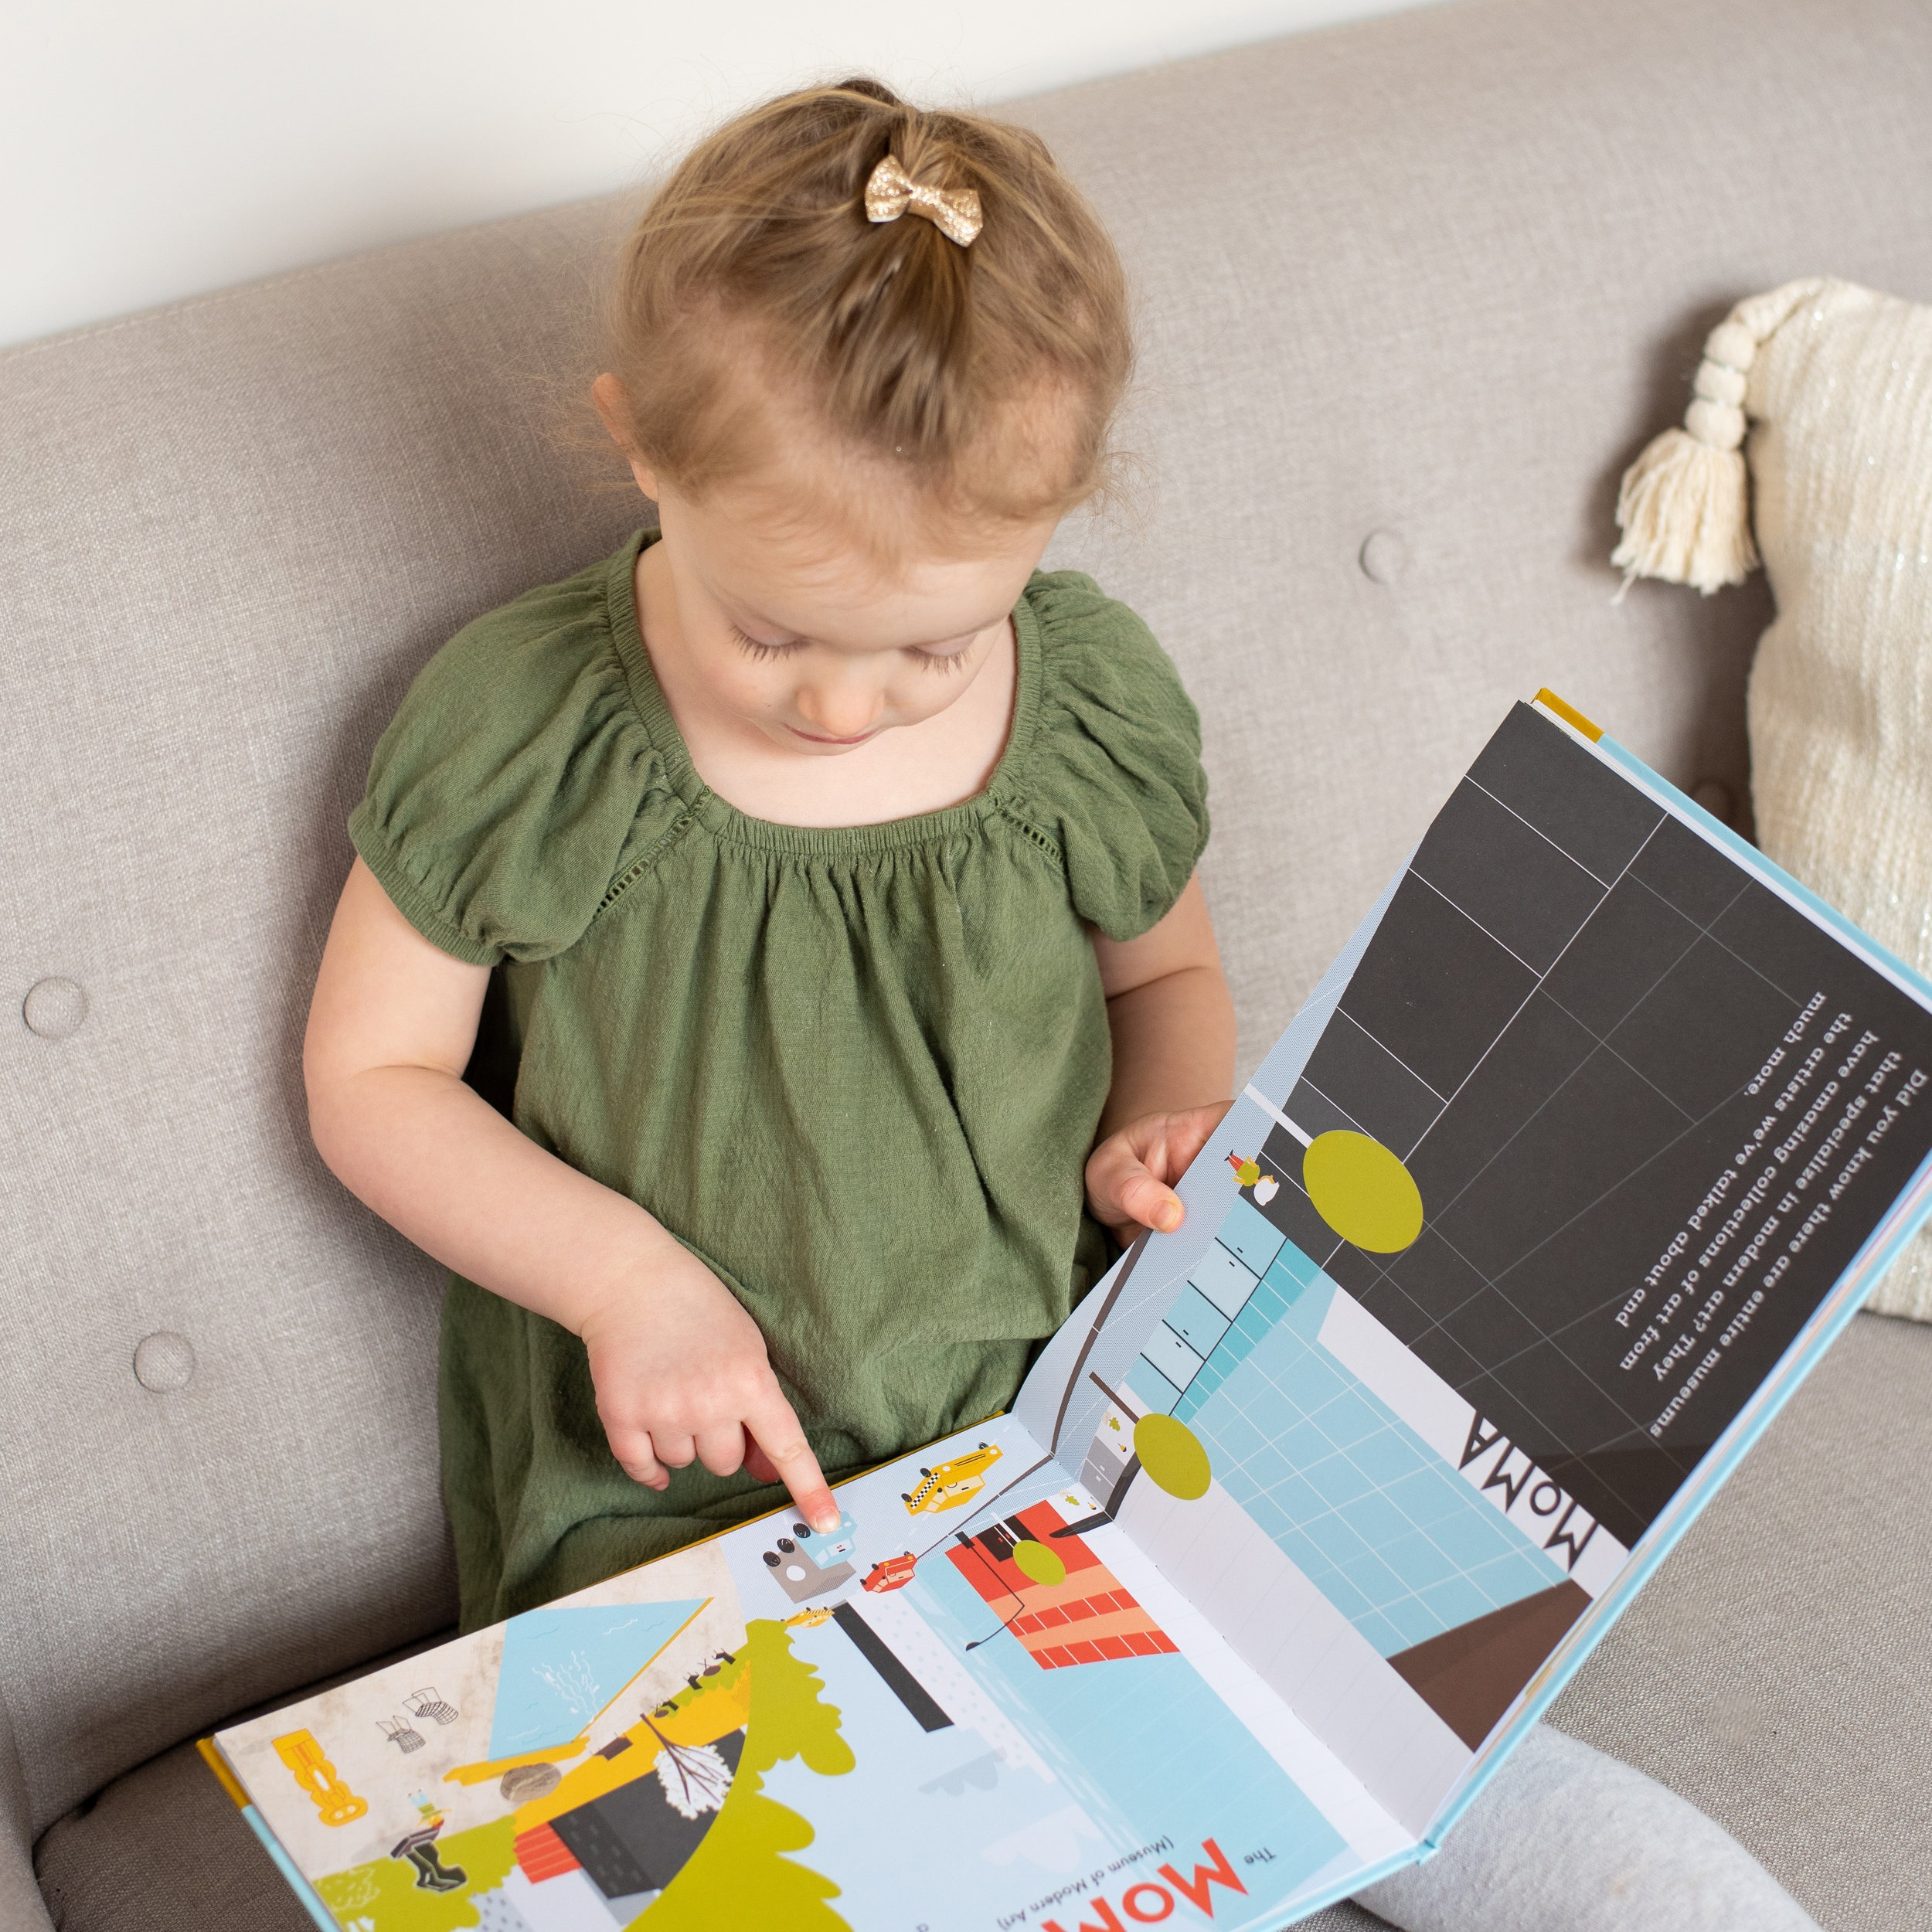 art is the future - The mission behind this book is to inspire kids to enjoy and learn about art at a young age.Learn More